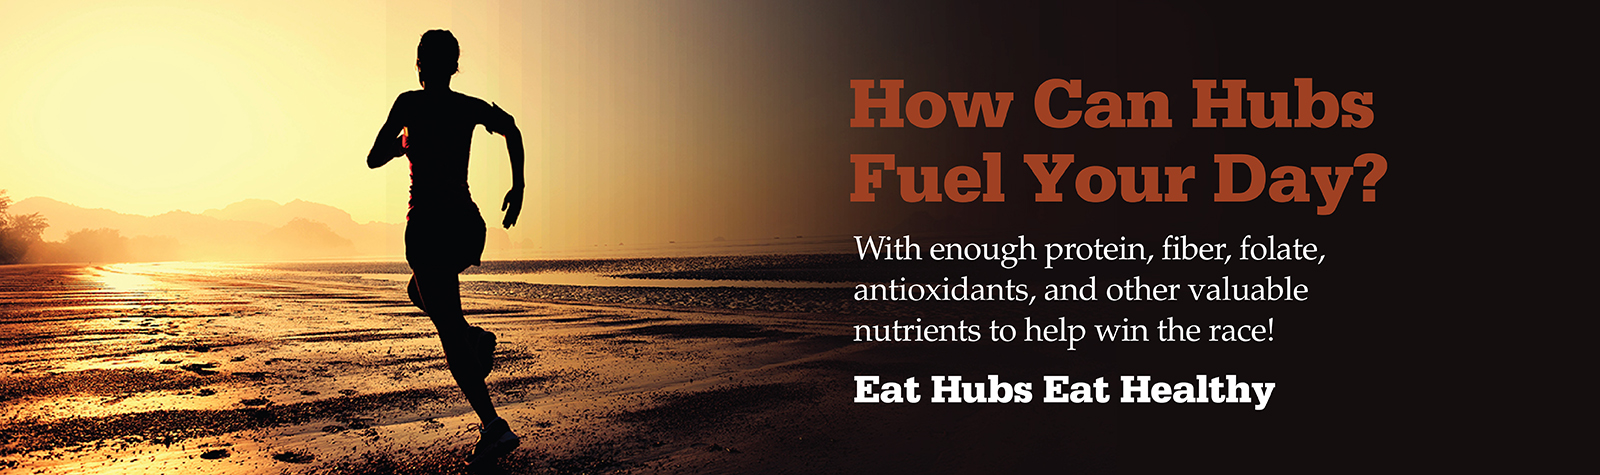 How Can Hubs Fuel Your Day?